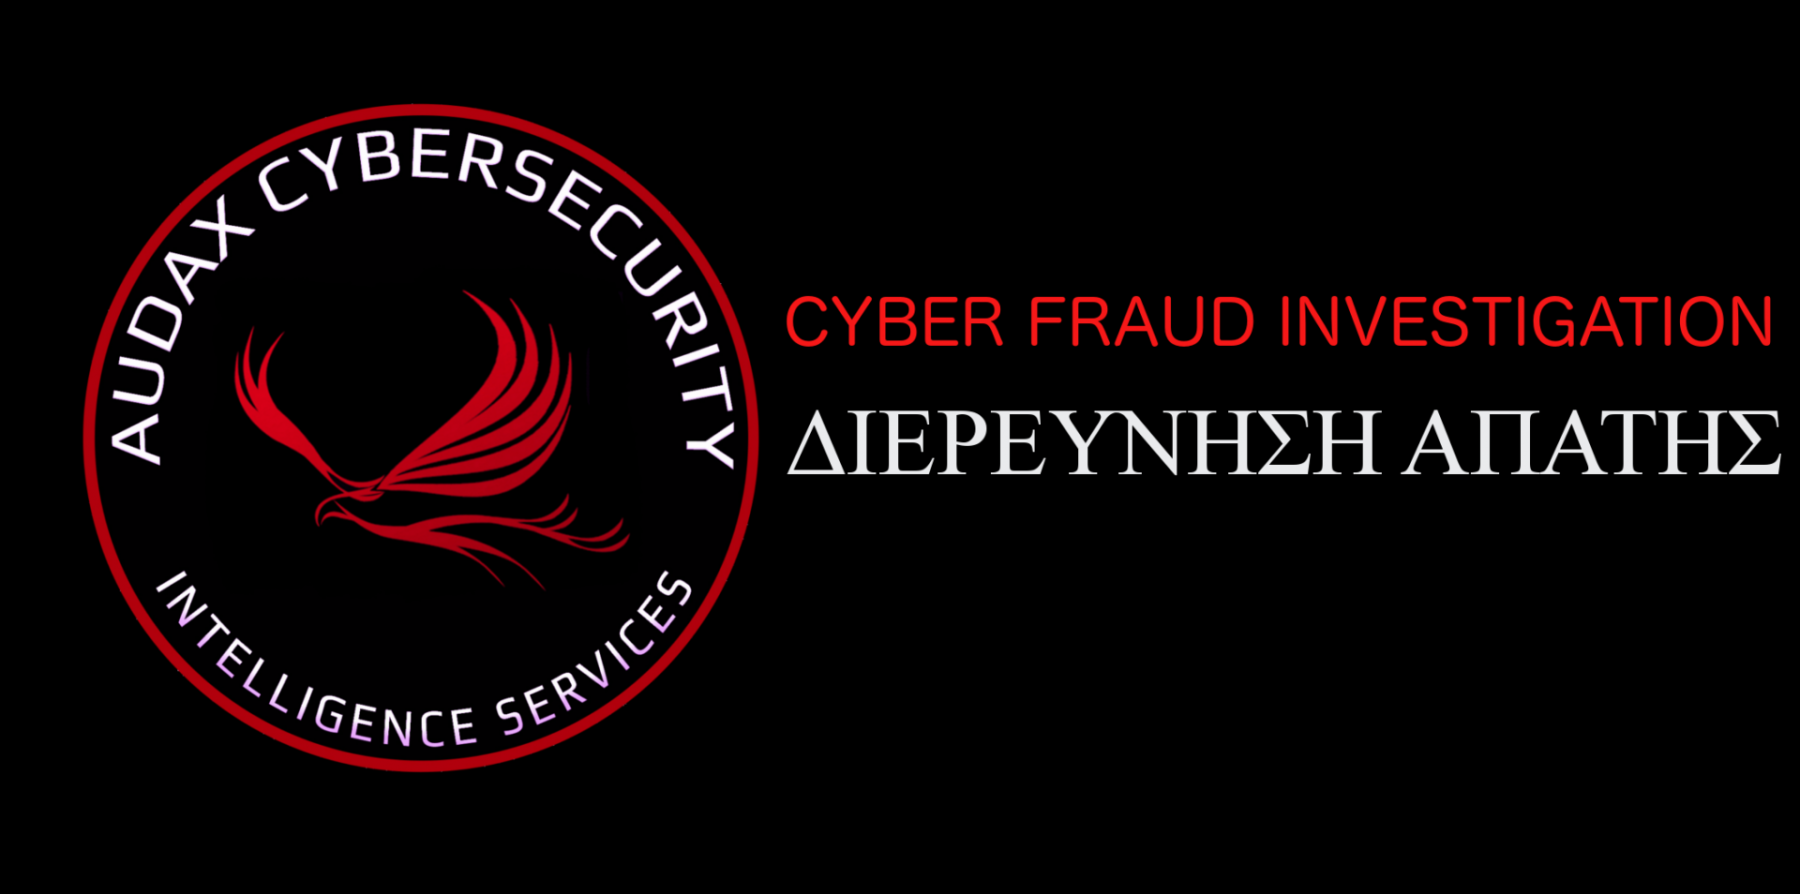 Cyber_Fraud_Investigation-1920x1371